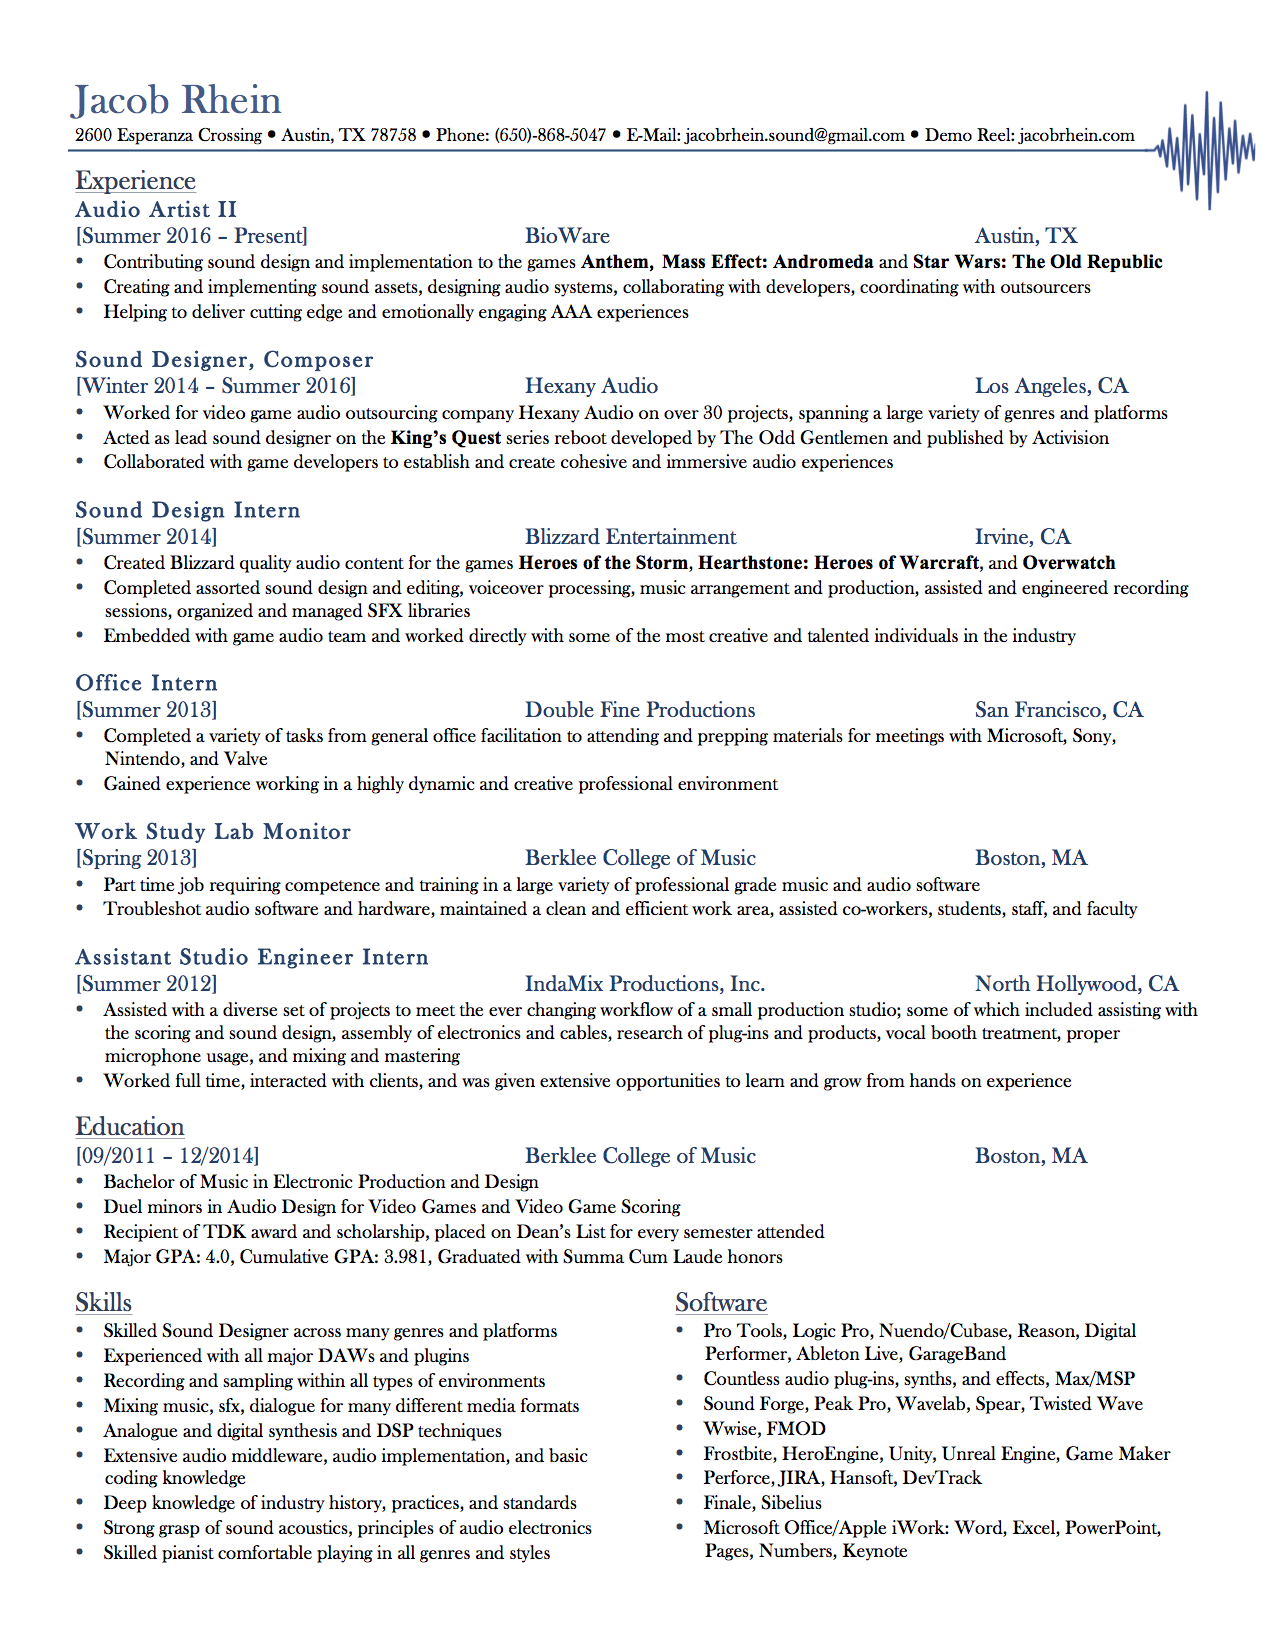 Beautiful Blizzard Resume Ideas Simple Resume Office Templates